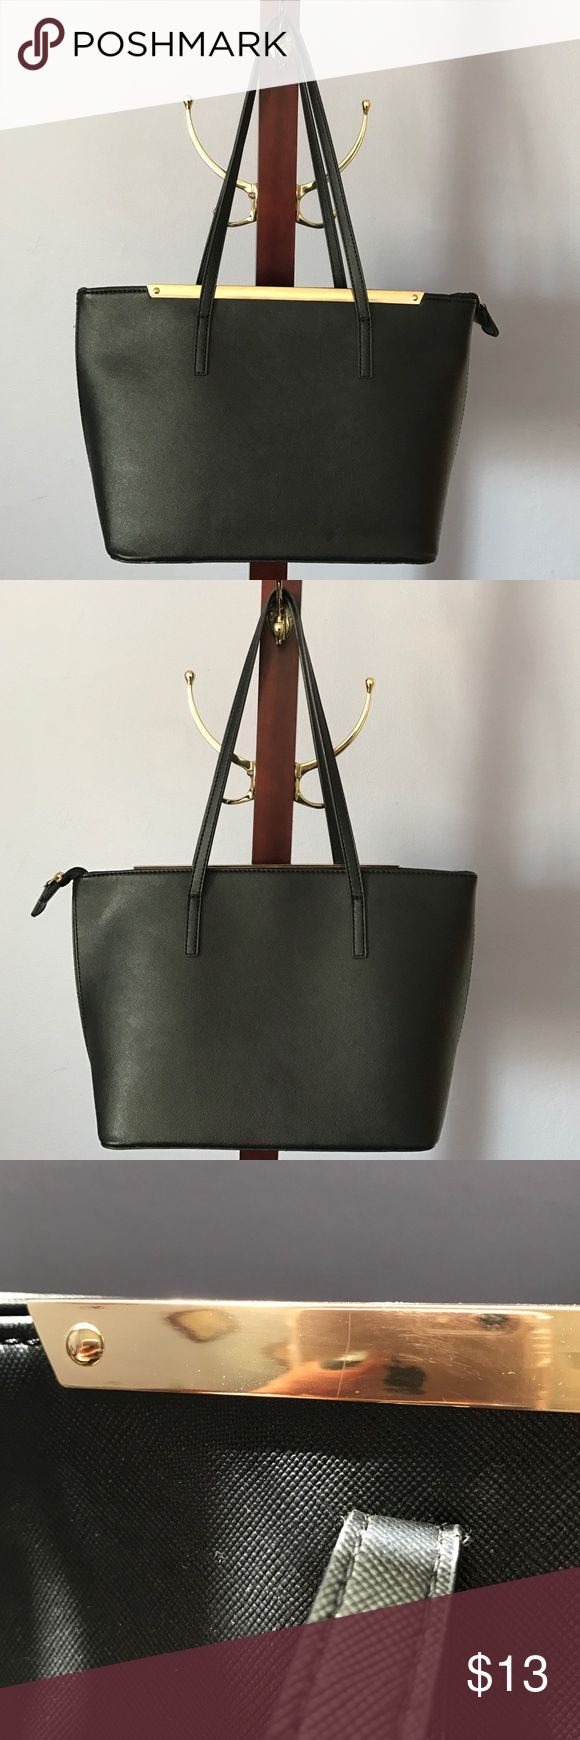 Black hard material Aldo tote bag Stylish black tote bag, length 9 inches, handle straps 10 inches, width 14 1/2 one flaw the gold rim on top had a small scratch. Bags